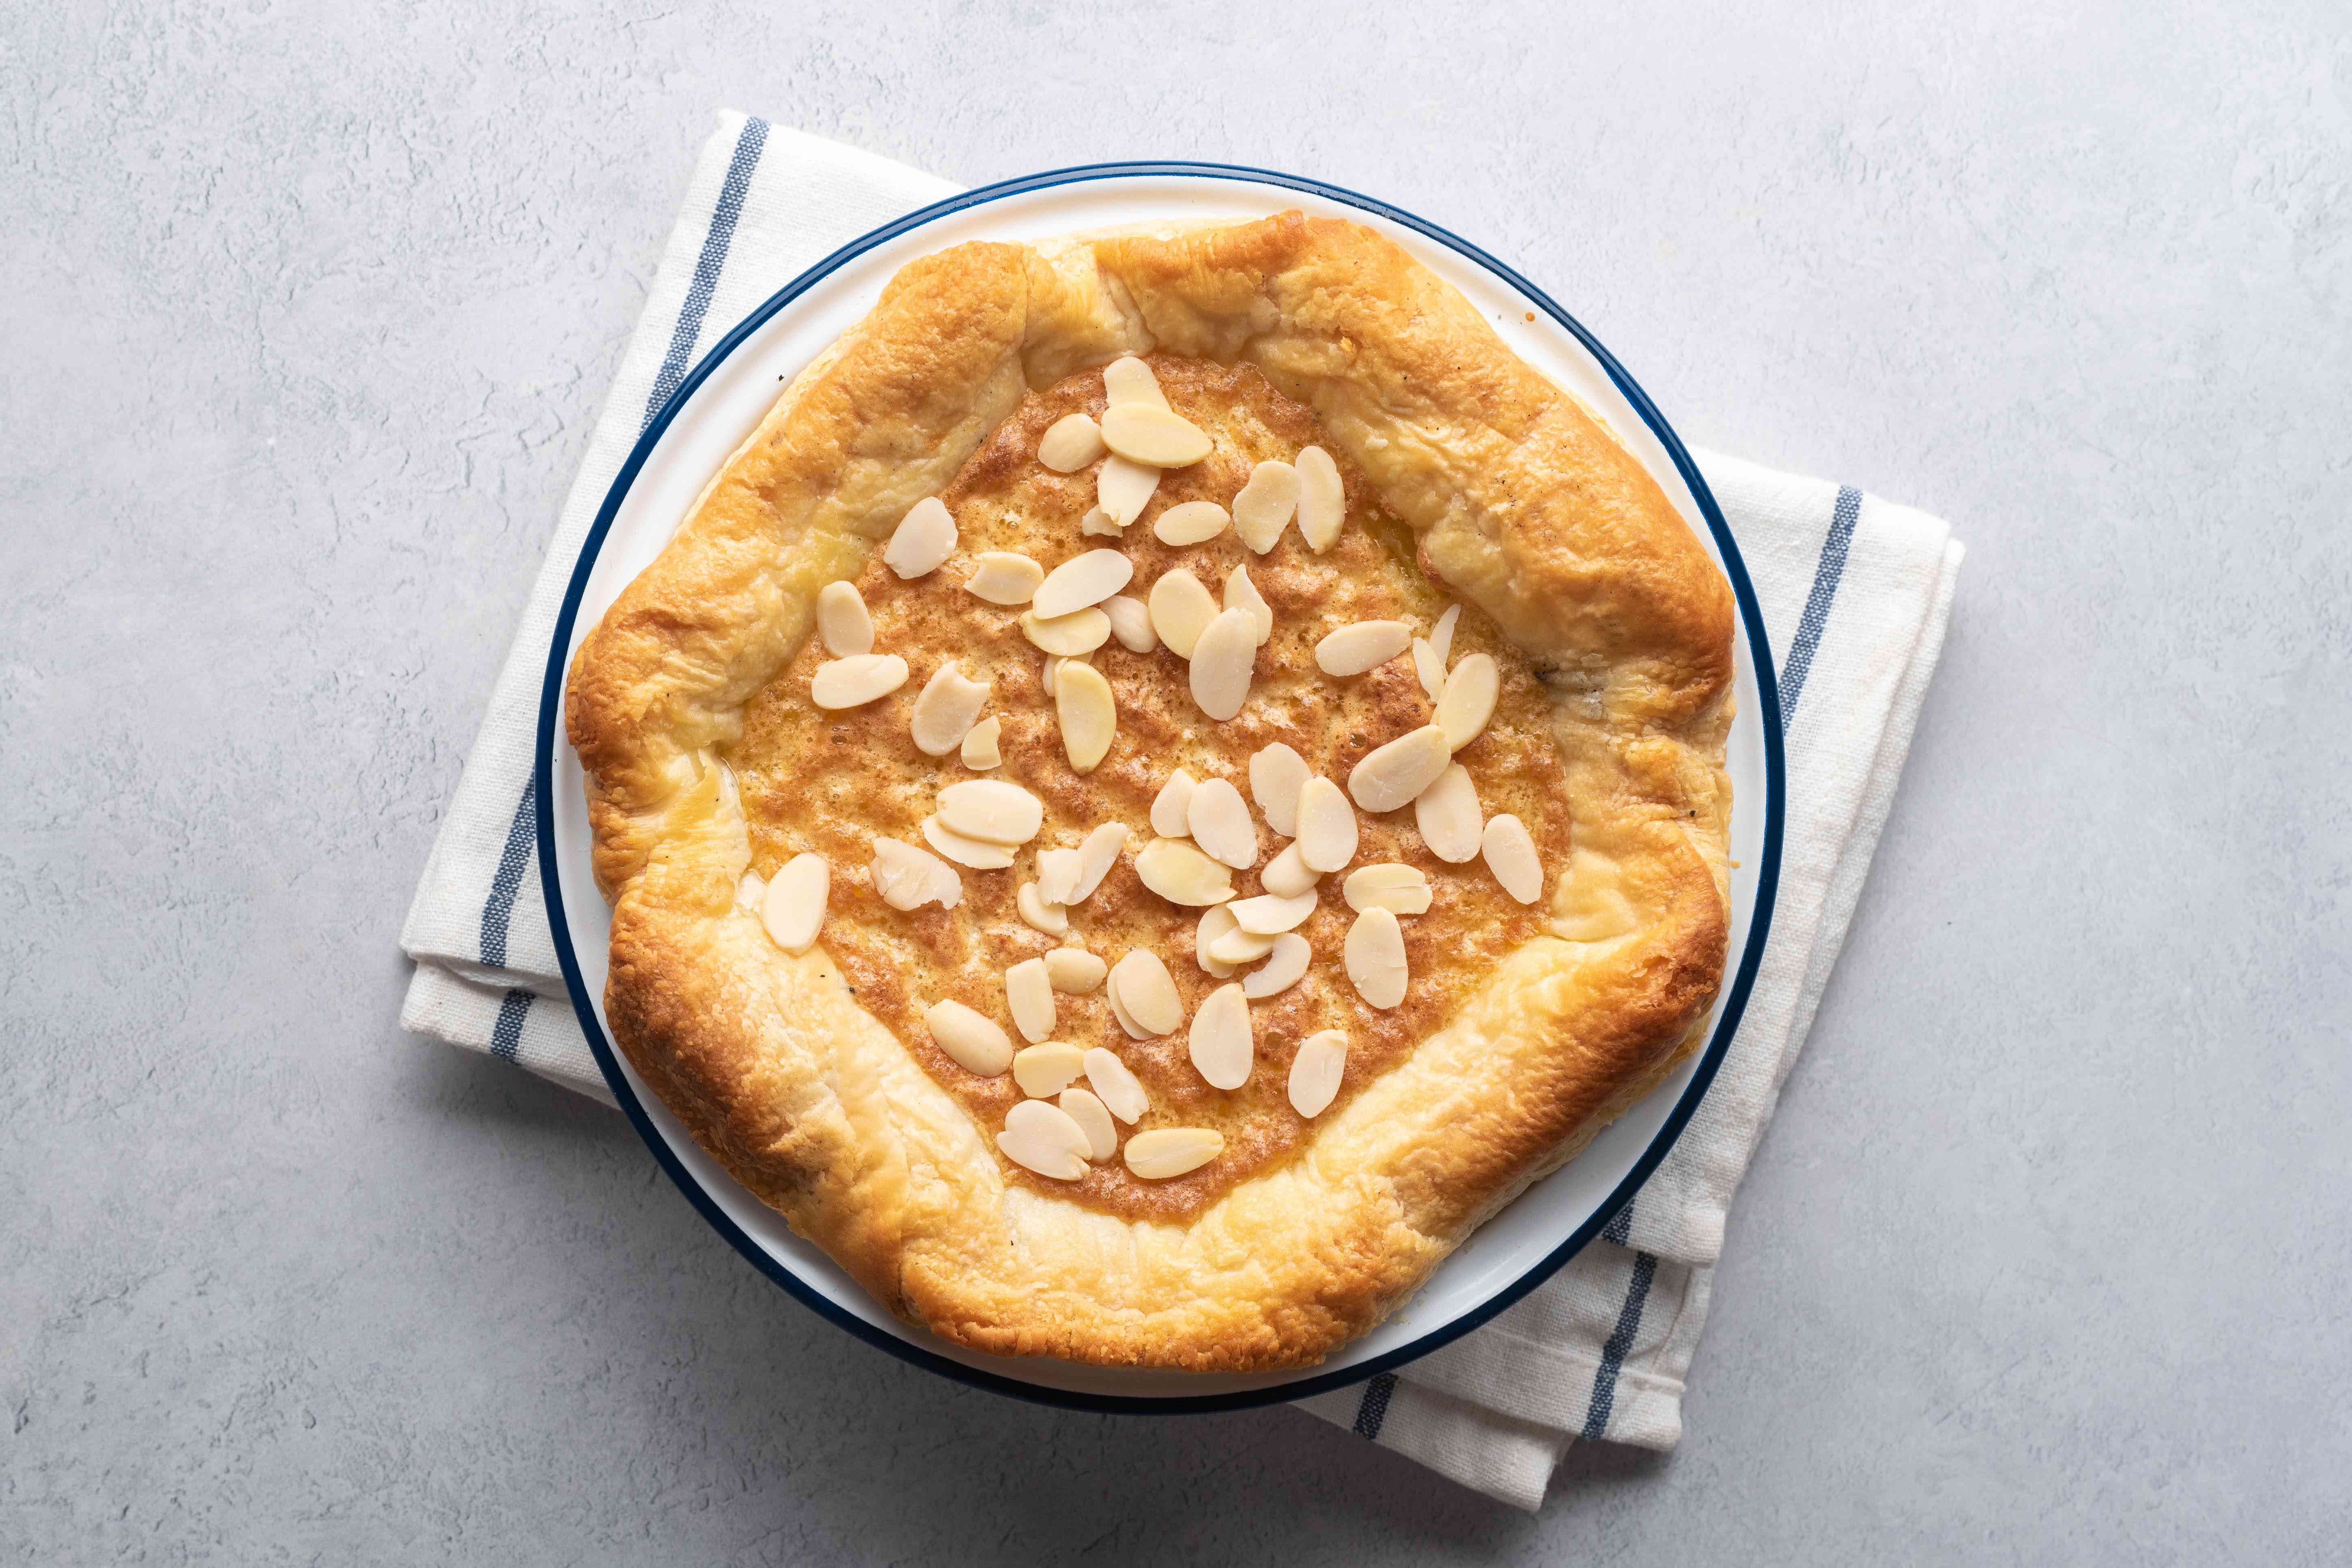 Remove the pudding from the oven and sprinkle on the sliced almonds